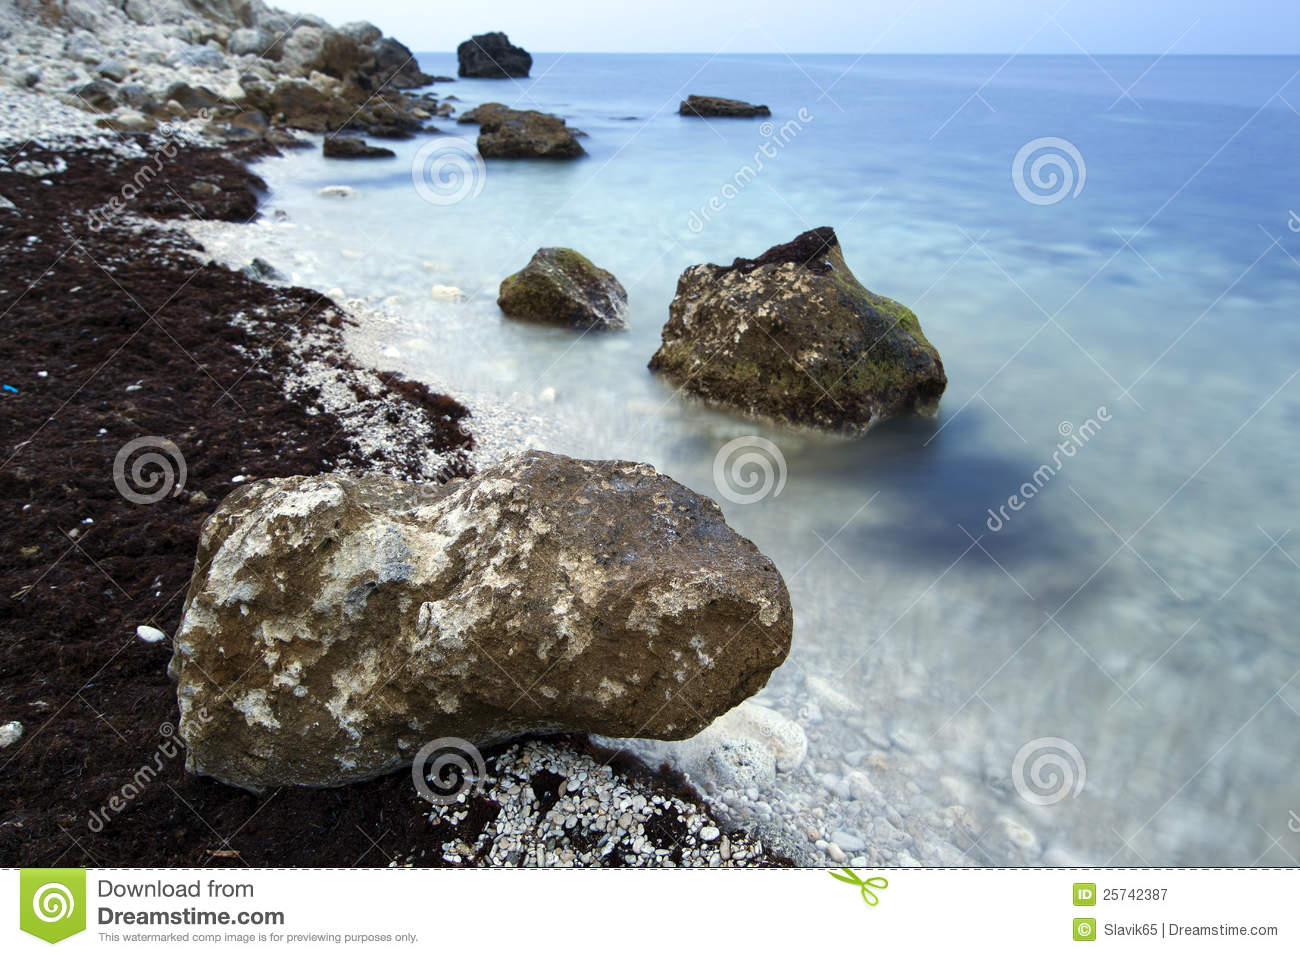 Lonely stone on the seashore